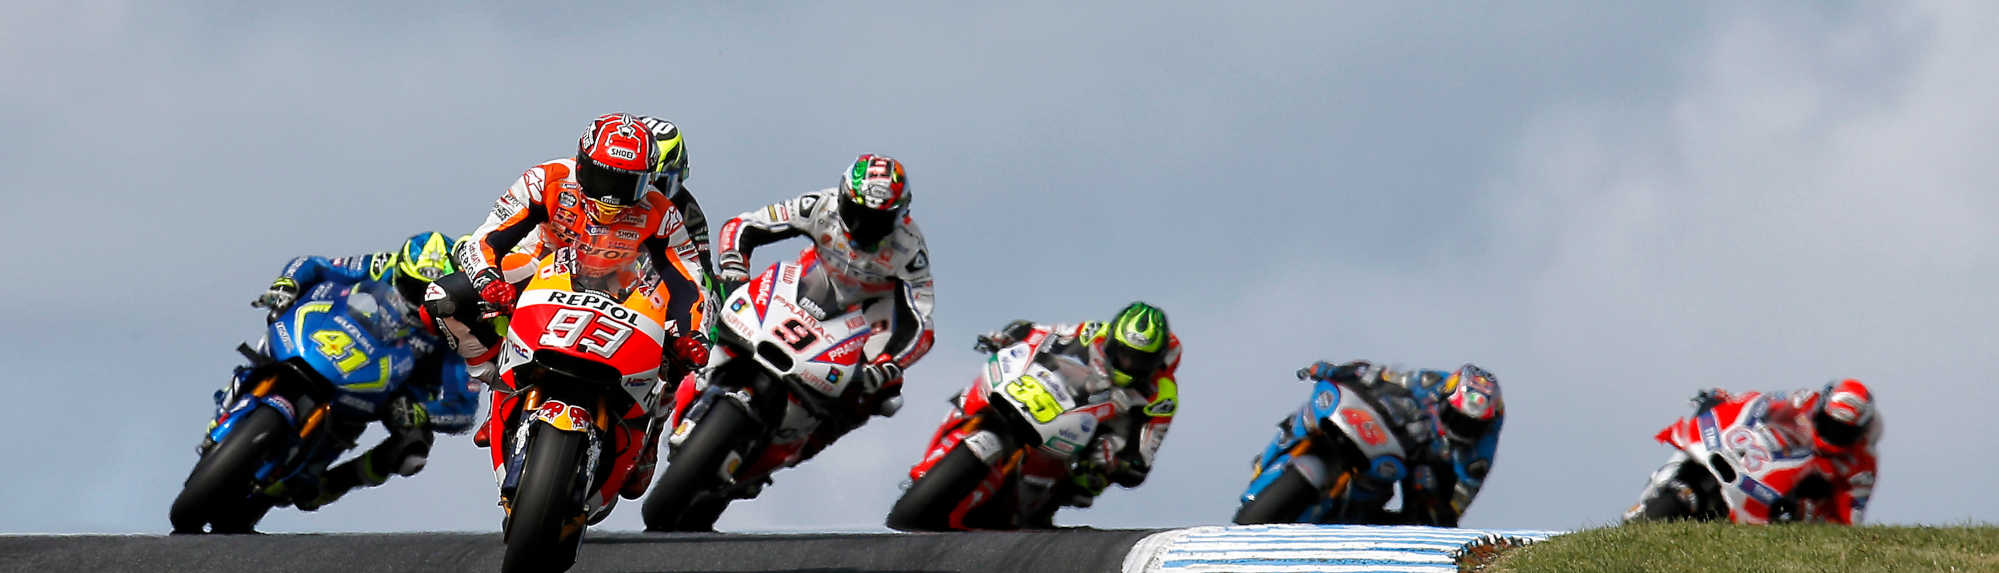 7 things you need to know about Phillip Island's Motor GP